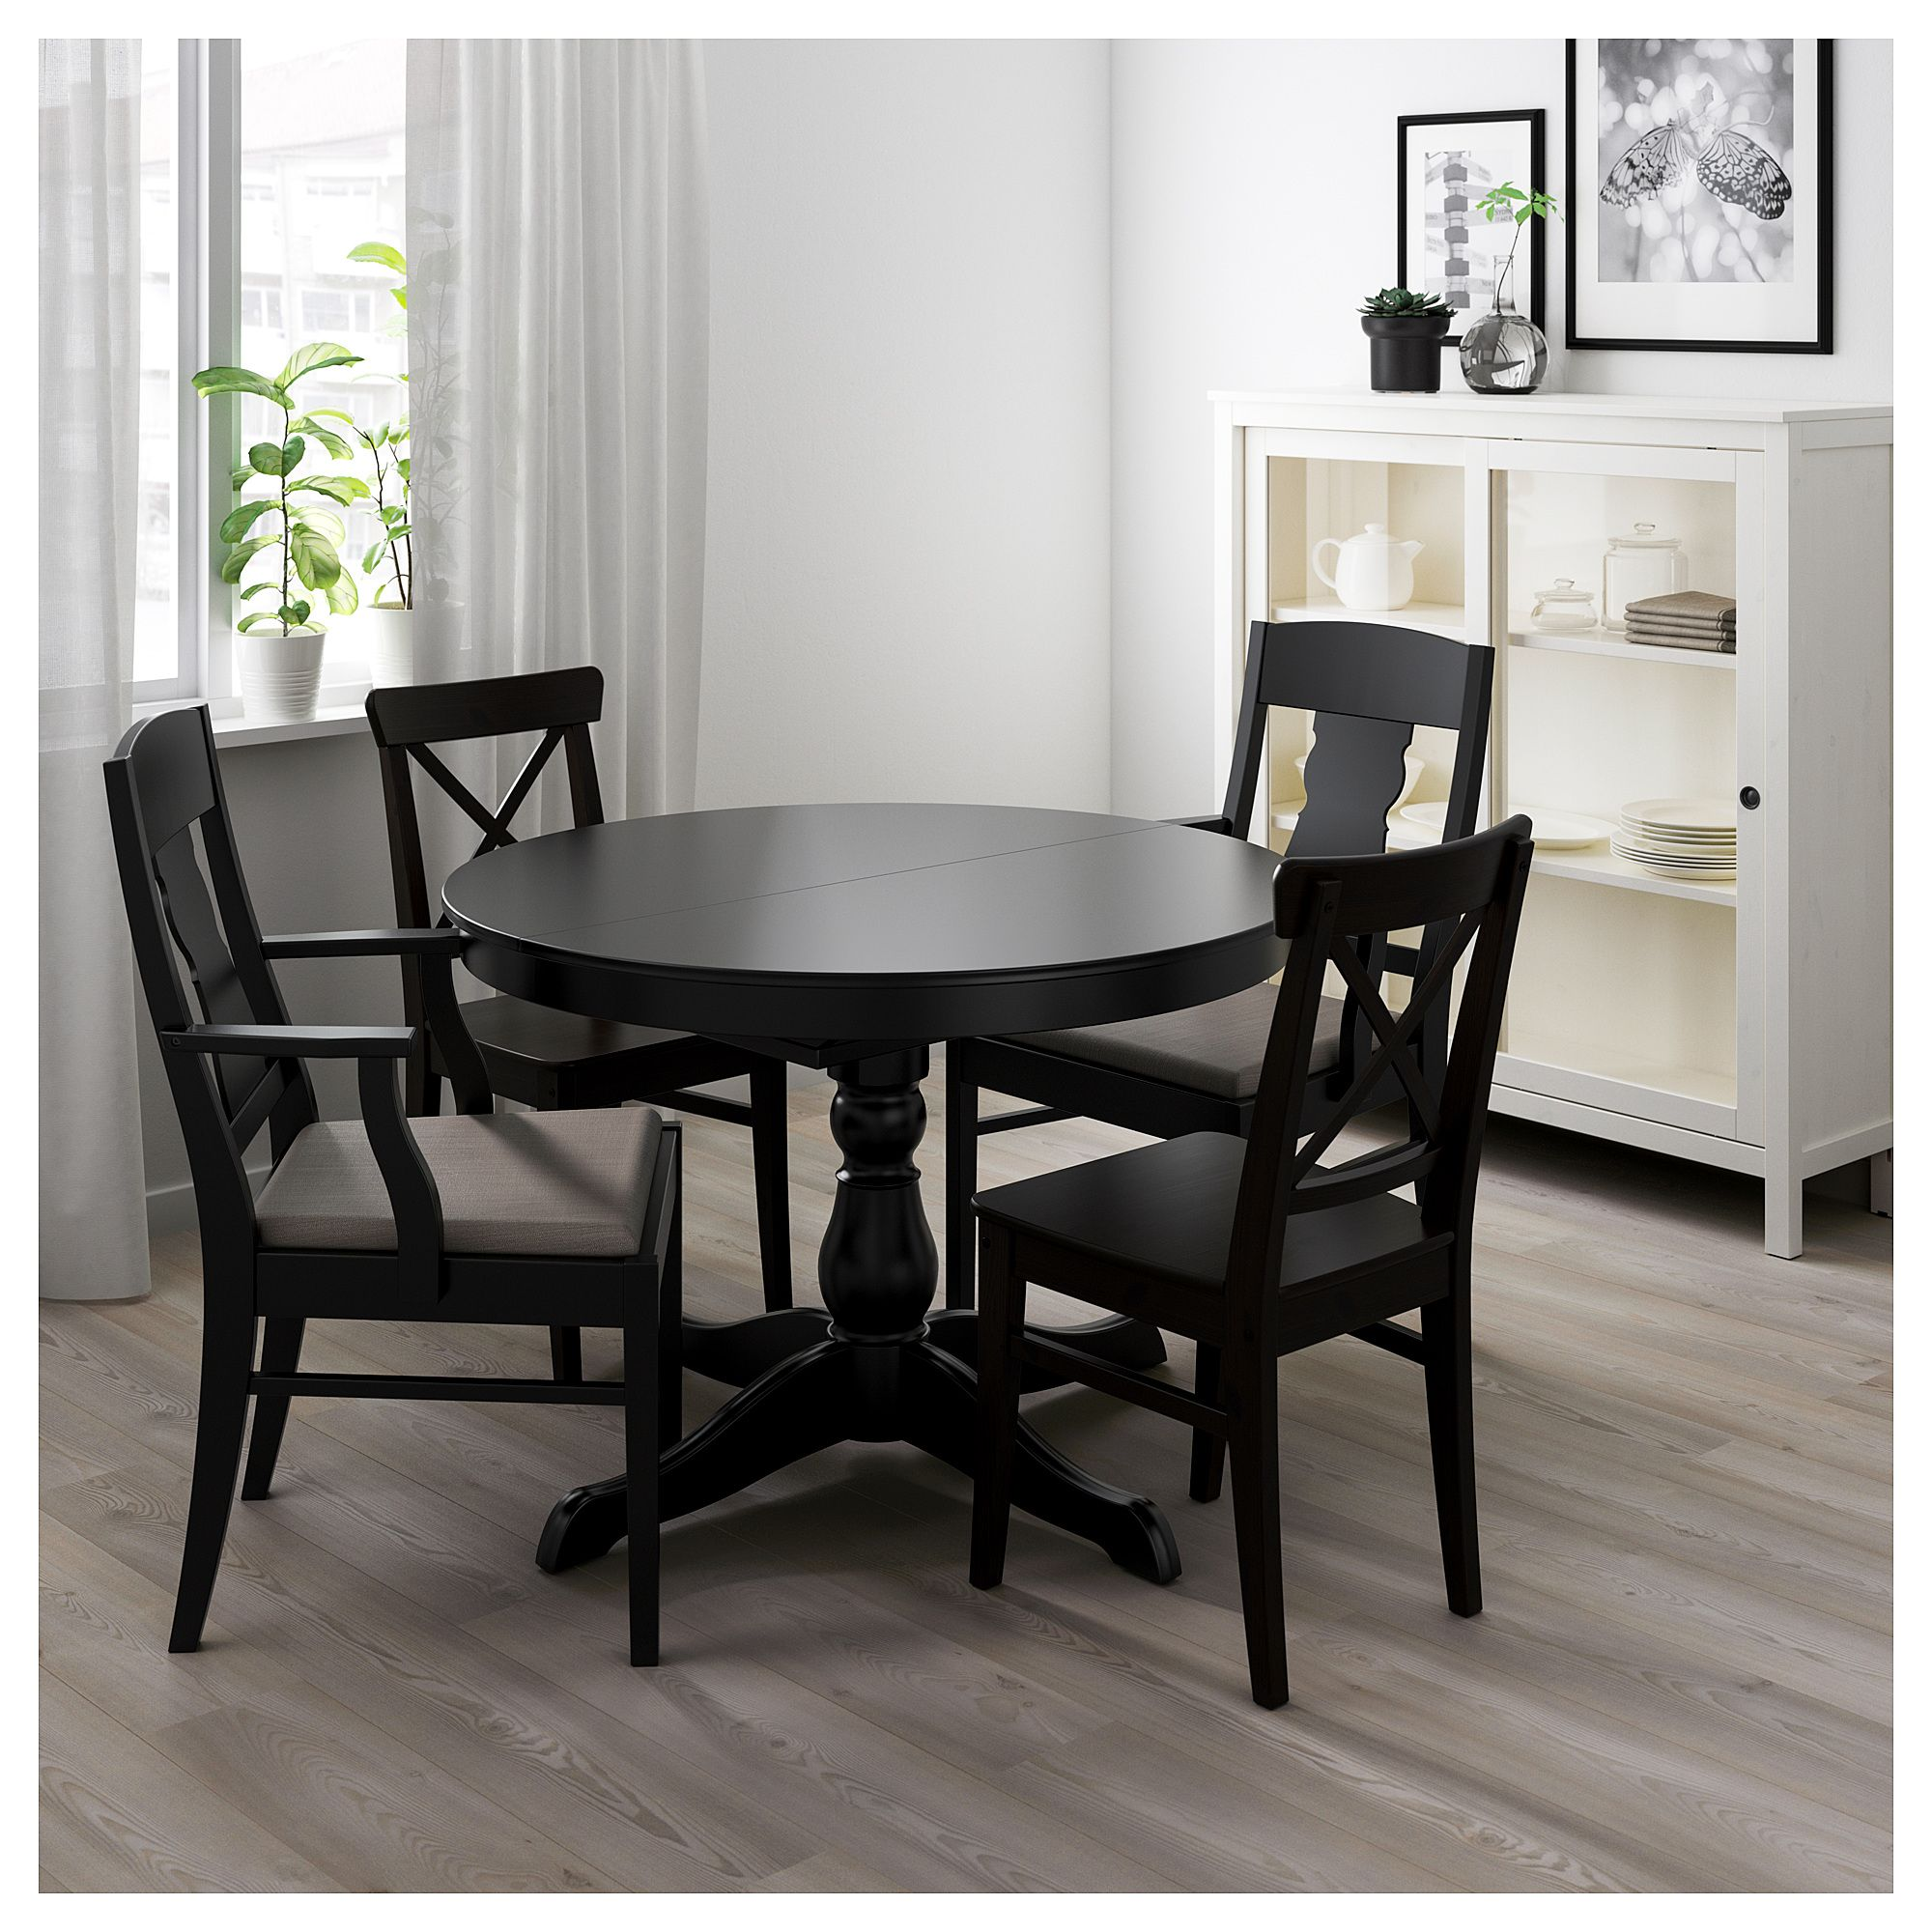 Ingatorp Ingolf Table And 4 Chairs Black Nolhaga Gray Beige Ikea Black Round Dining Table Black Kitchen Table Table